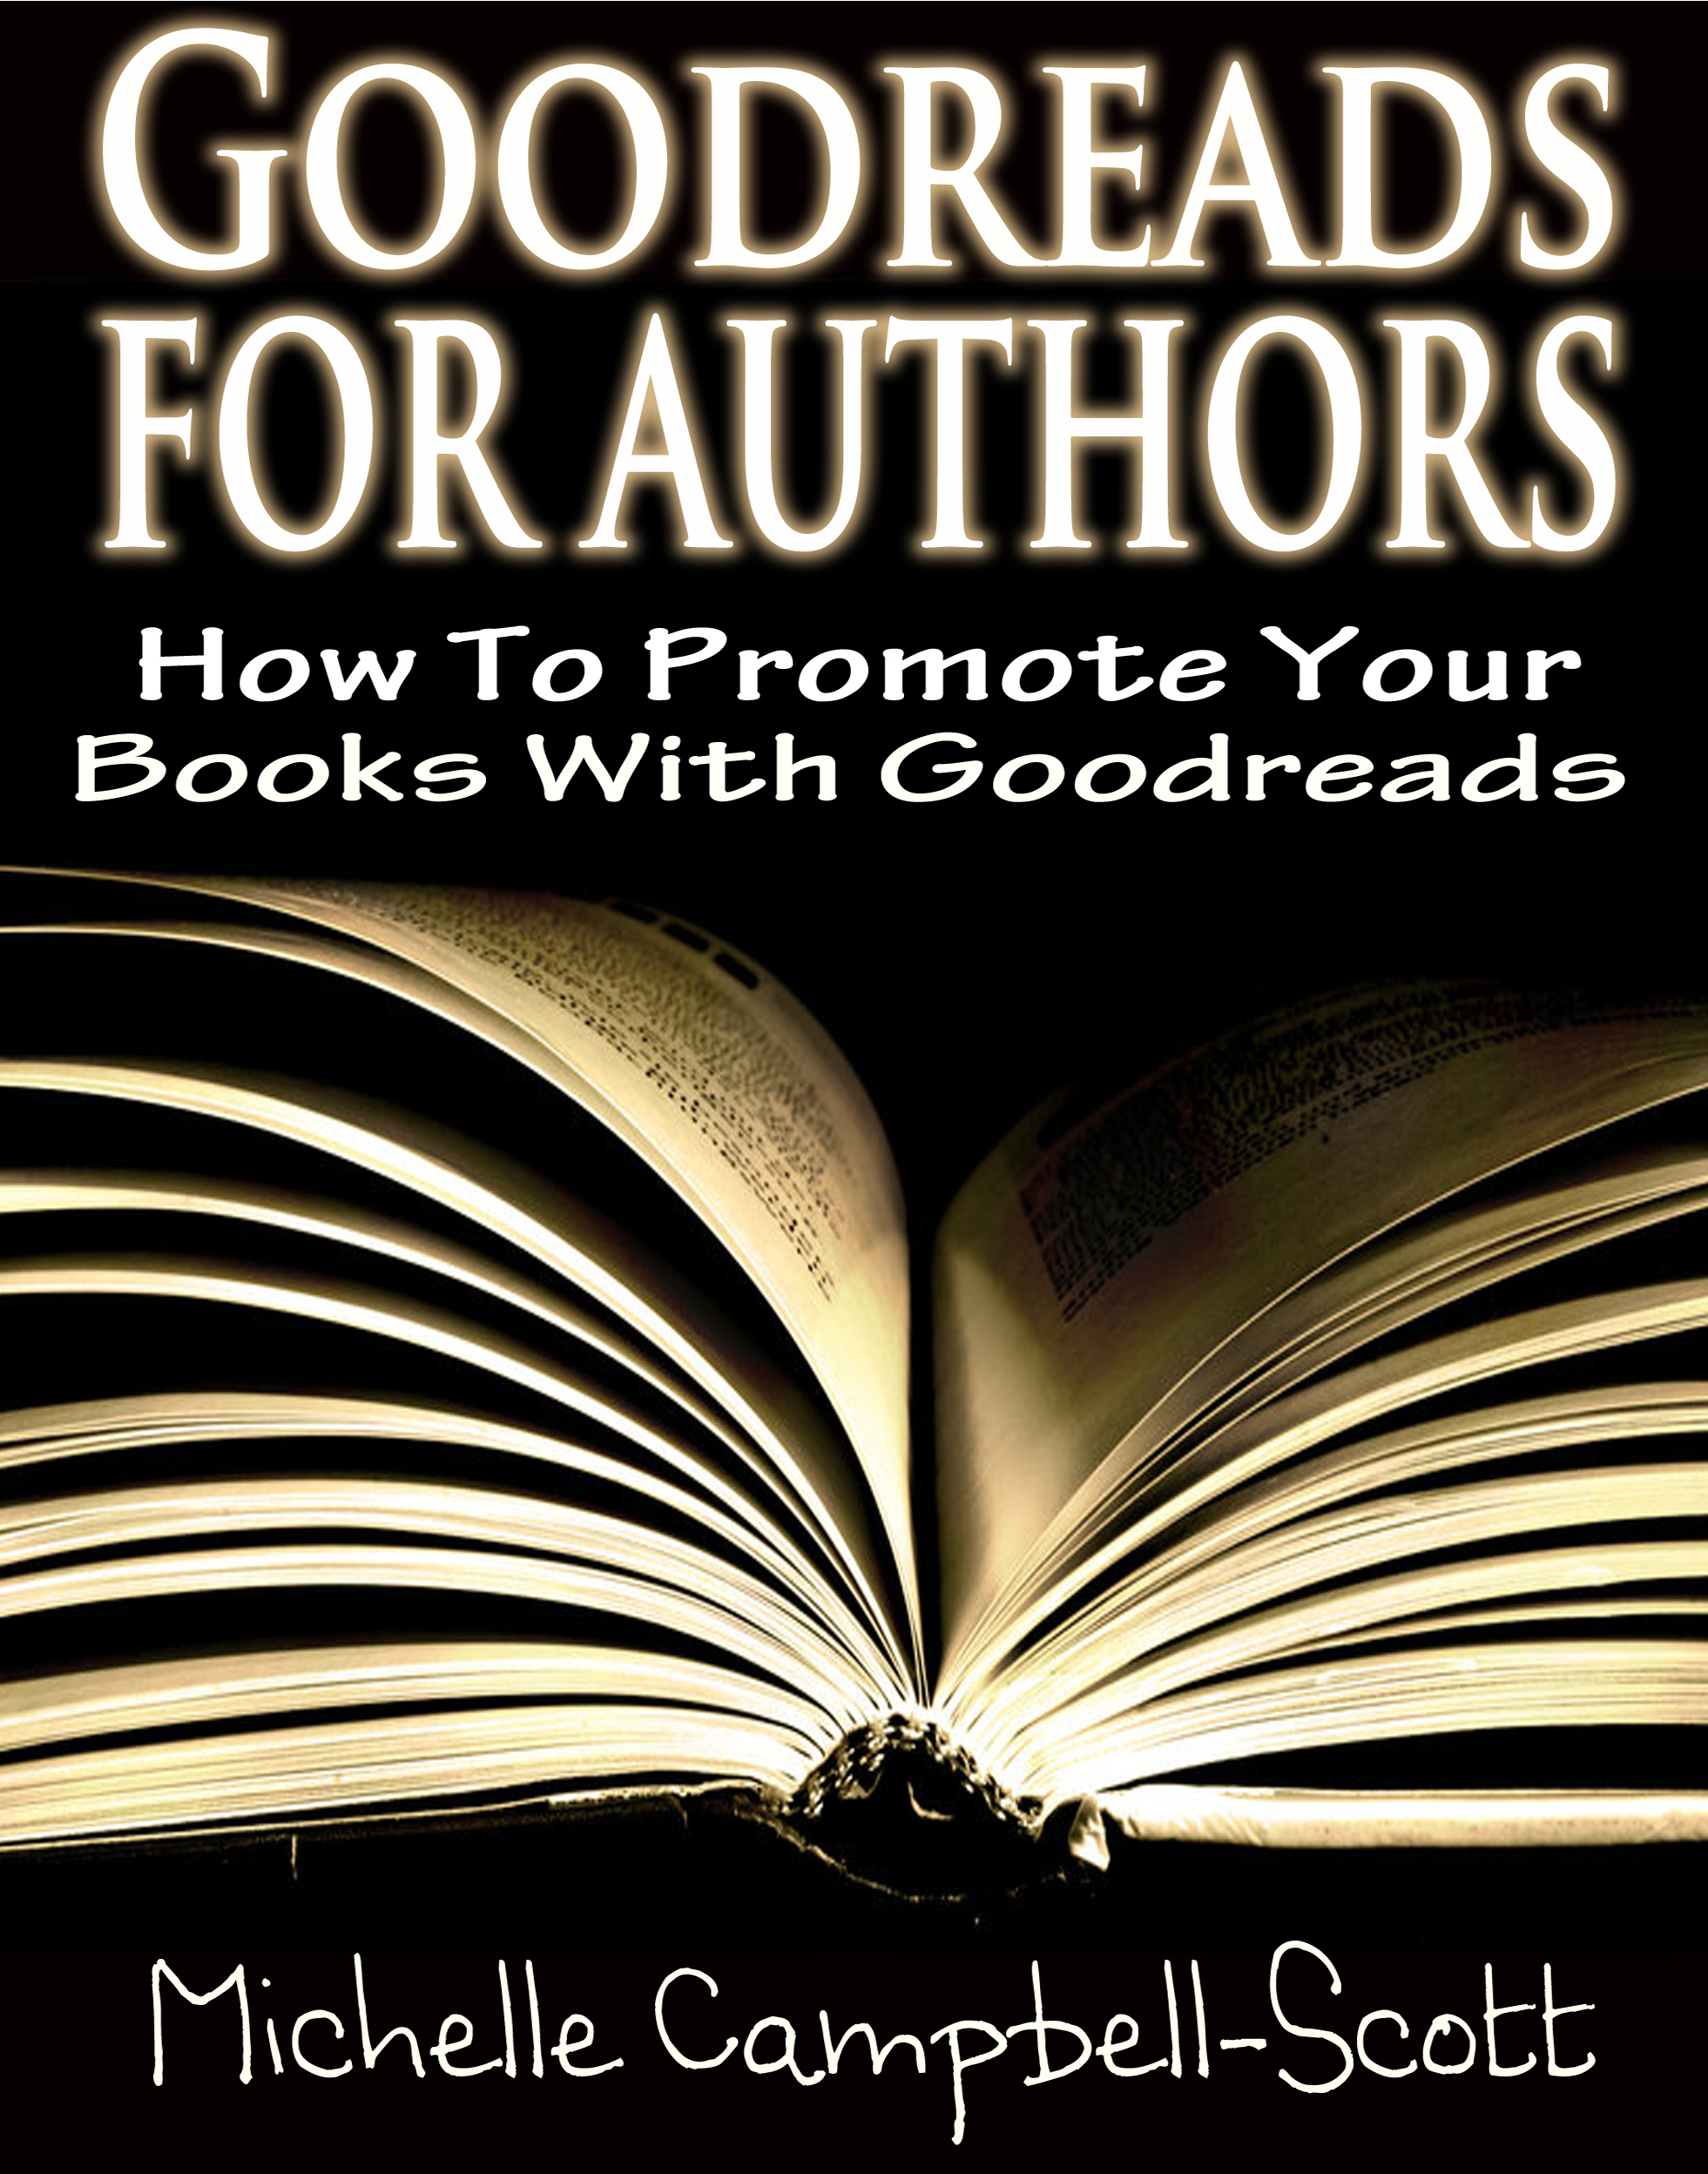 Goodreads for Authors by Michelle Campbell-Scott aka Michelle Booth. Now available in paperback.